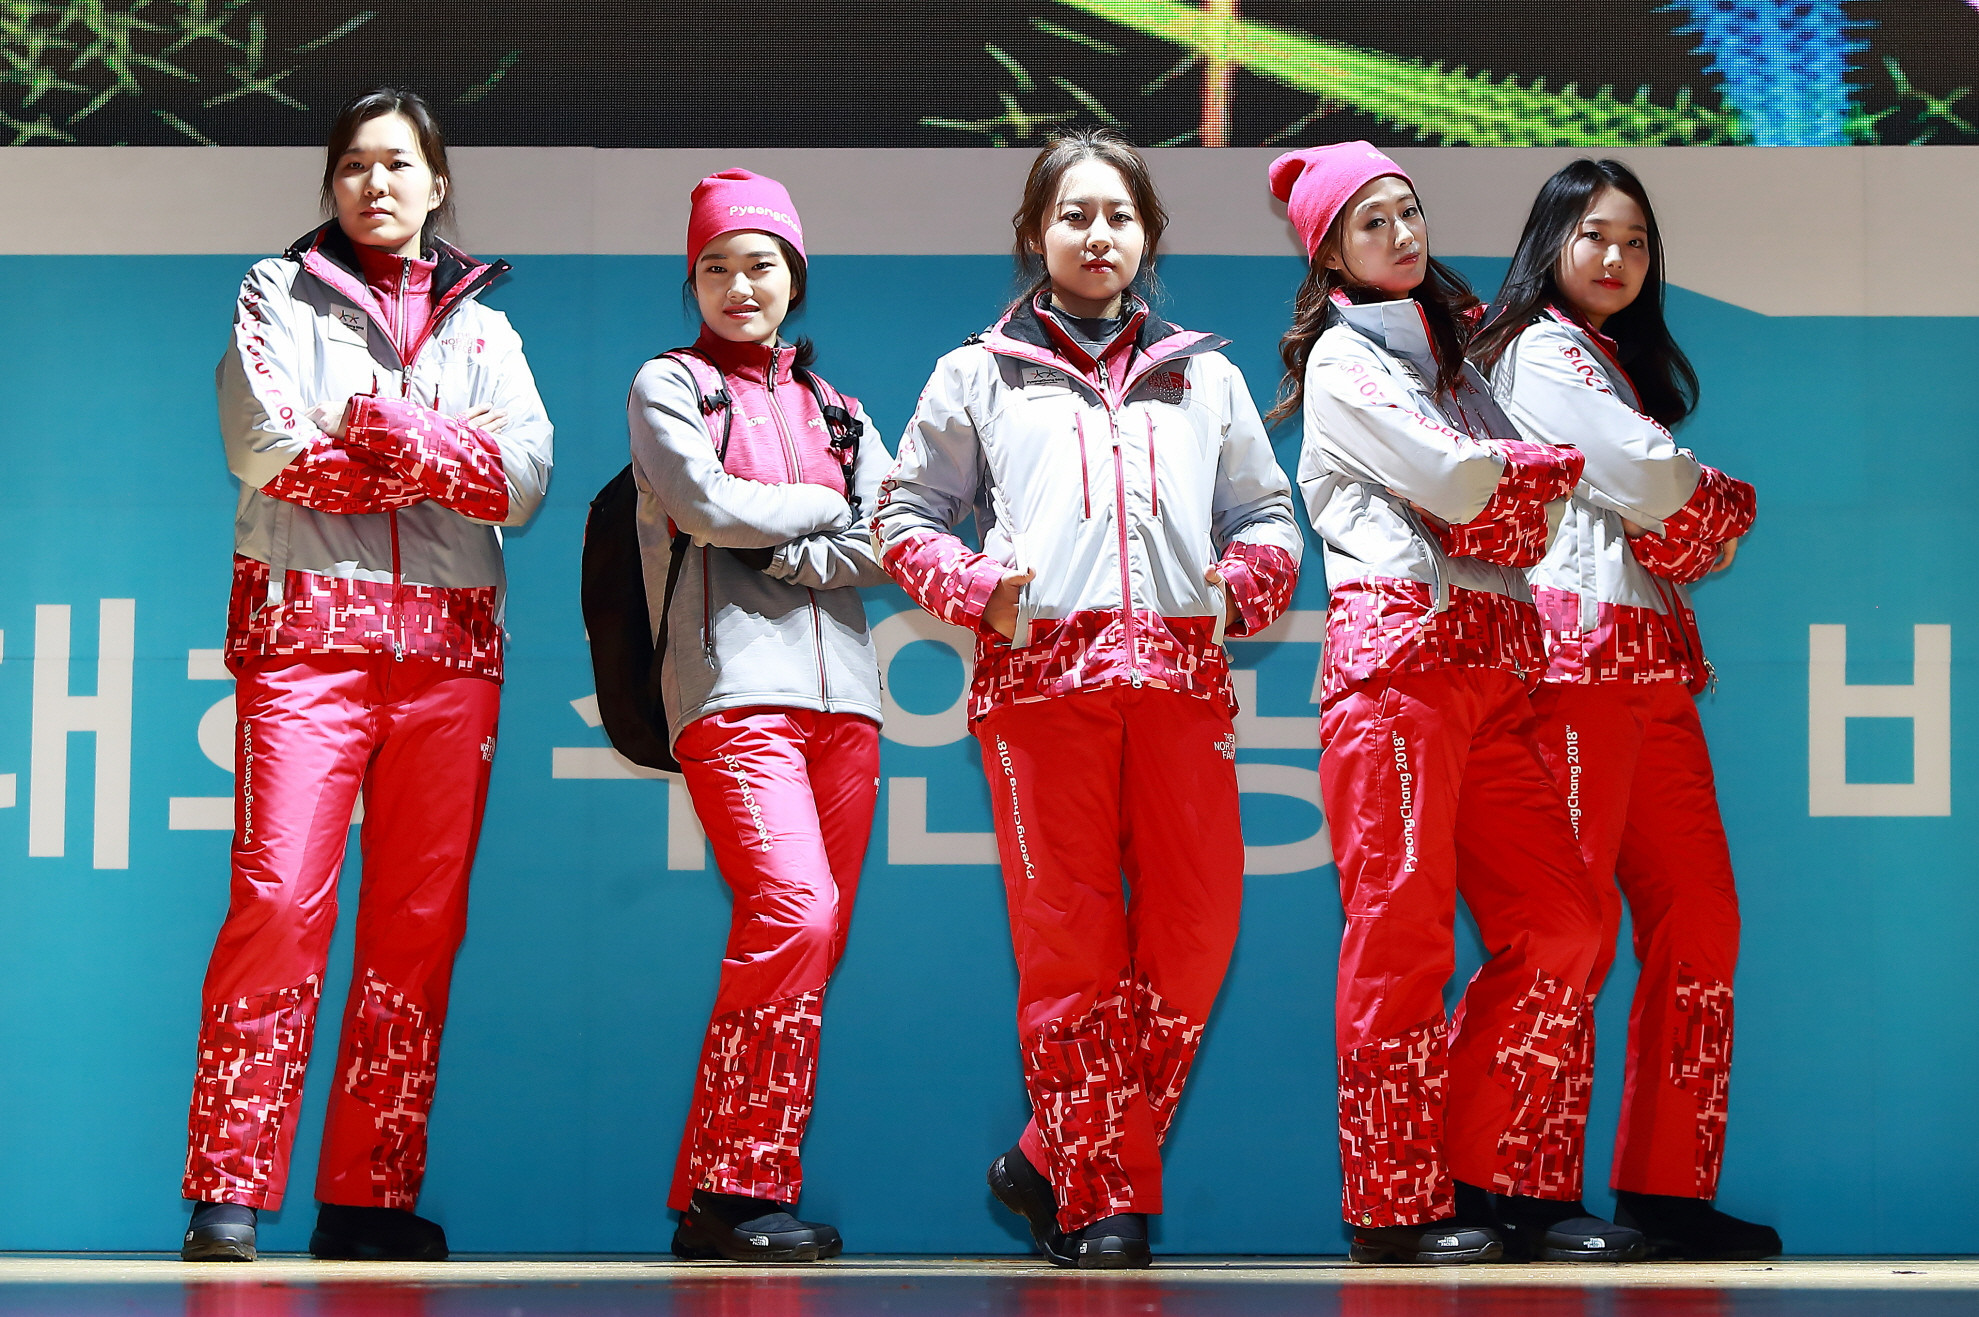 The Passion Crew show off their festive uniforms after the unveiling in Seoul of a festive red outfit that also represents the national flag ©Pyeongchang2018